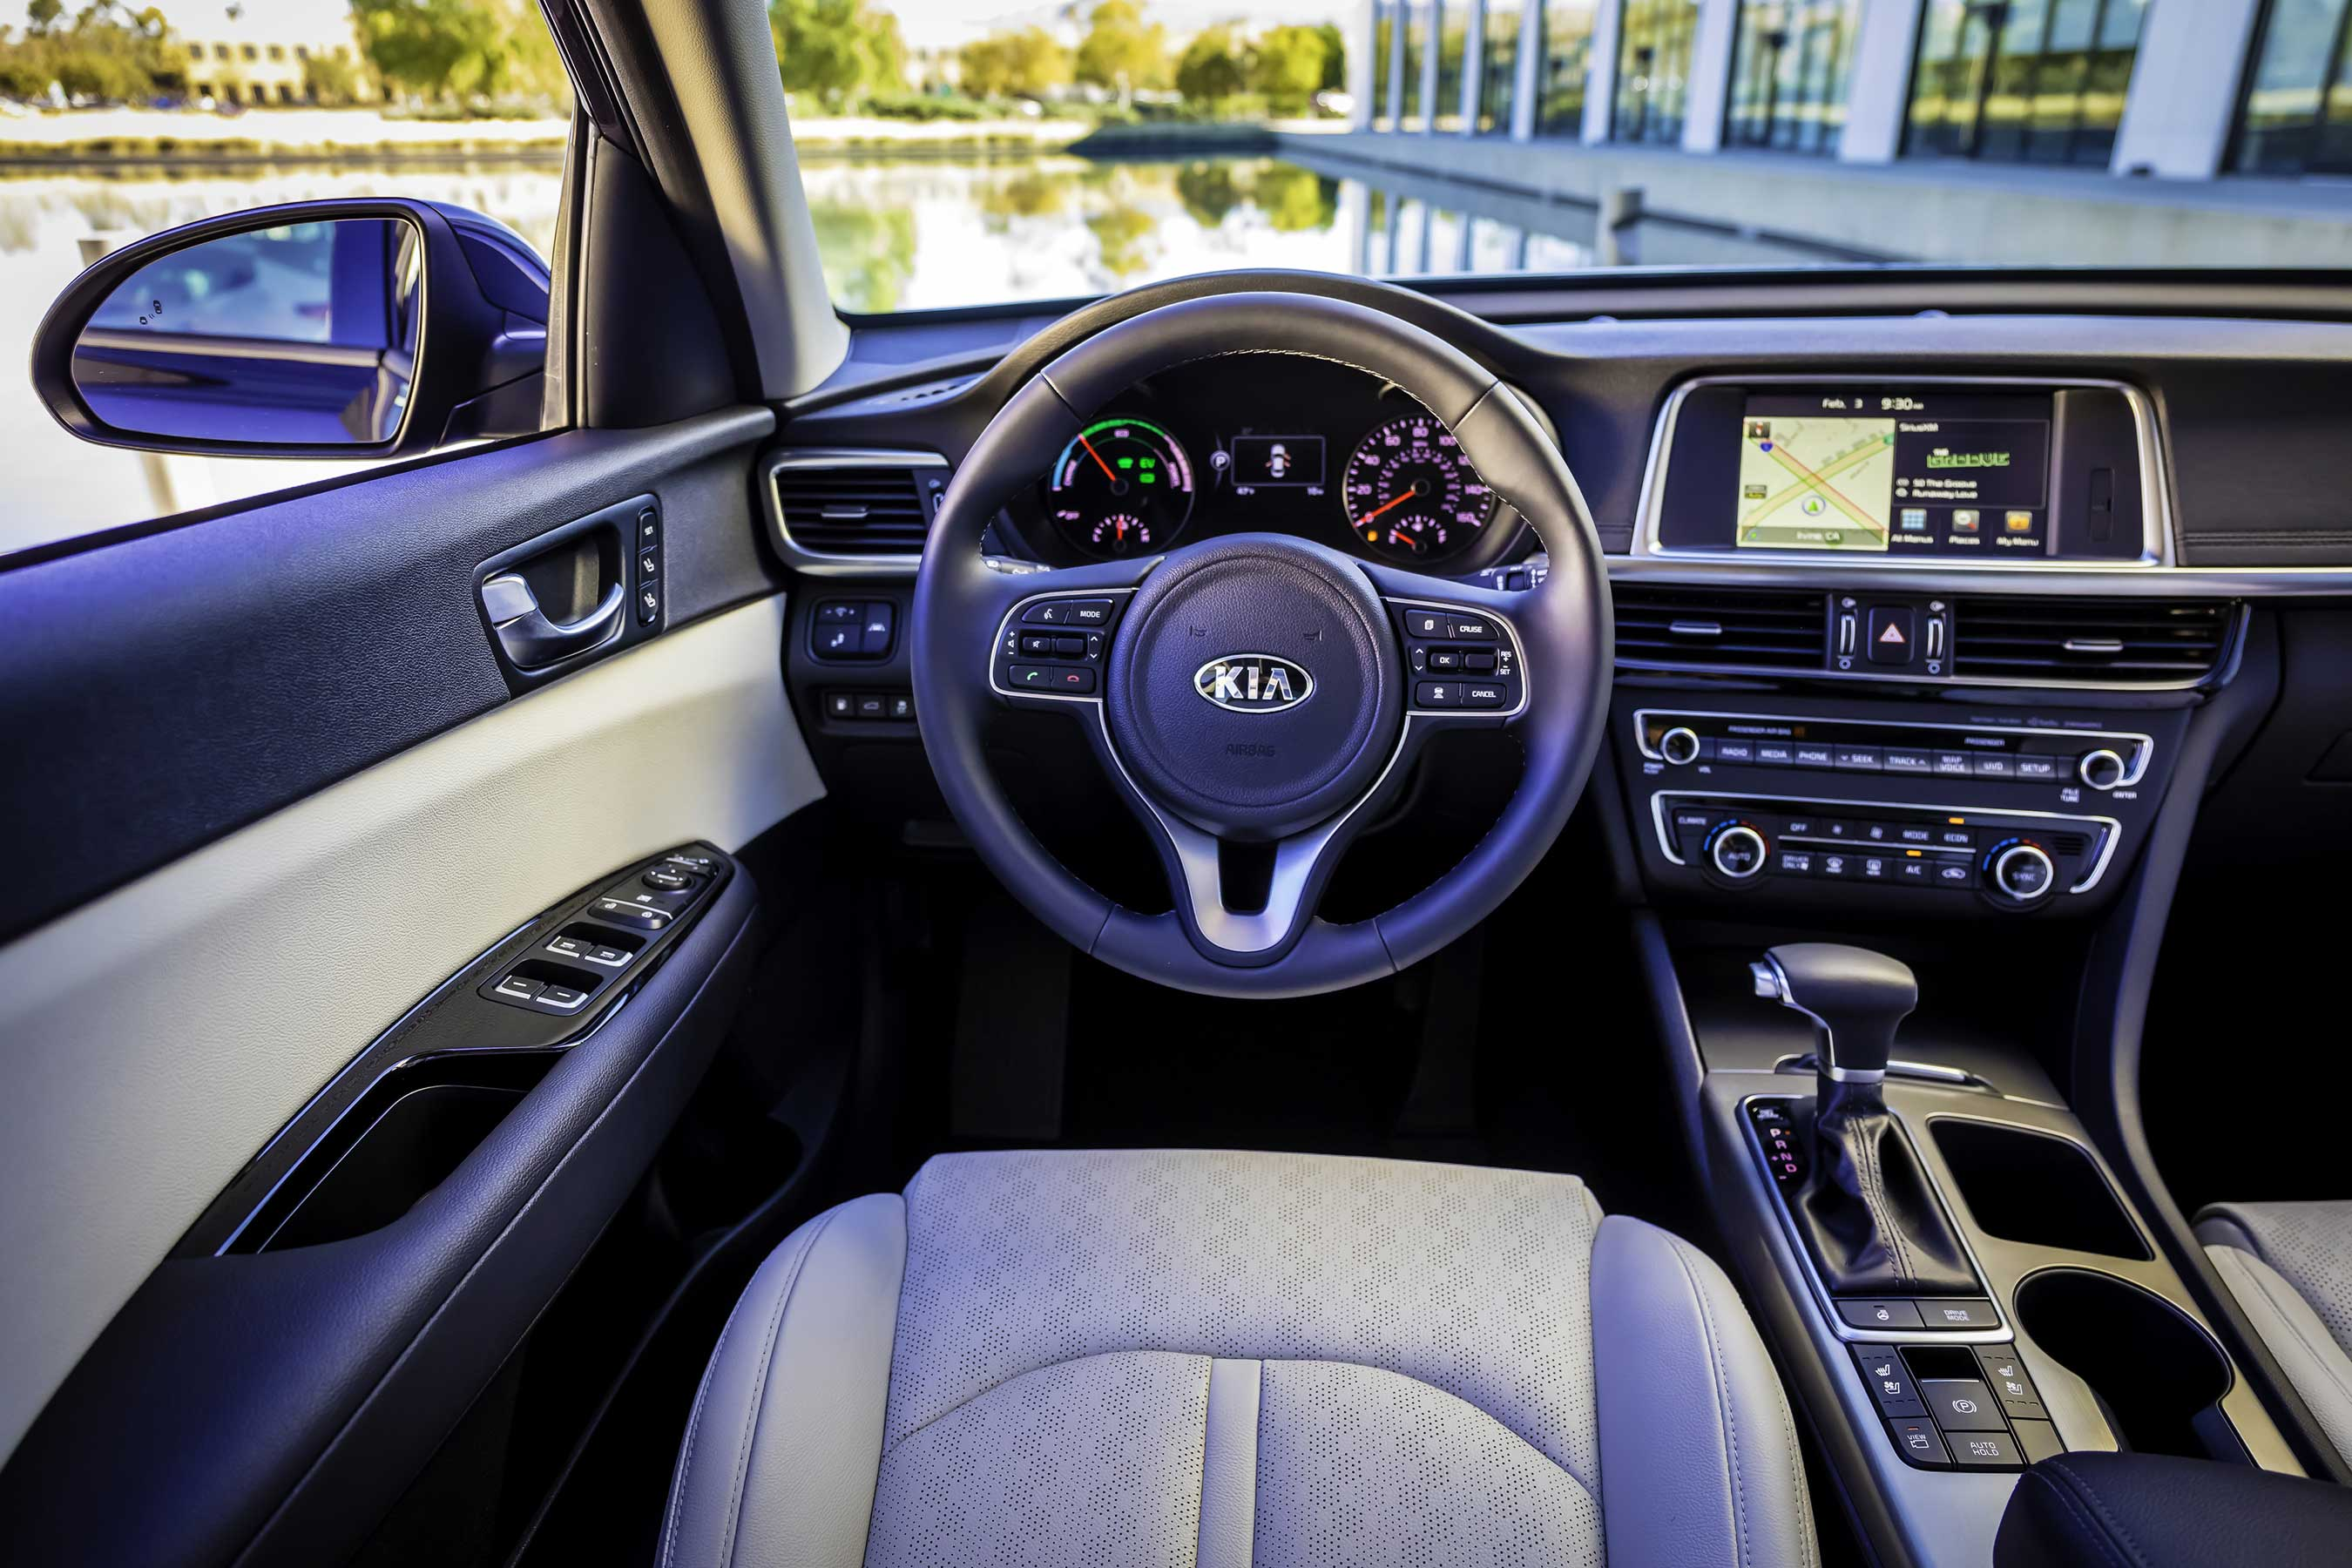 The all-new 2017 Optima Hybrid makes intelligent use of technology to deliver a host of comprehensive driver assistance systems and convenience features.